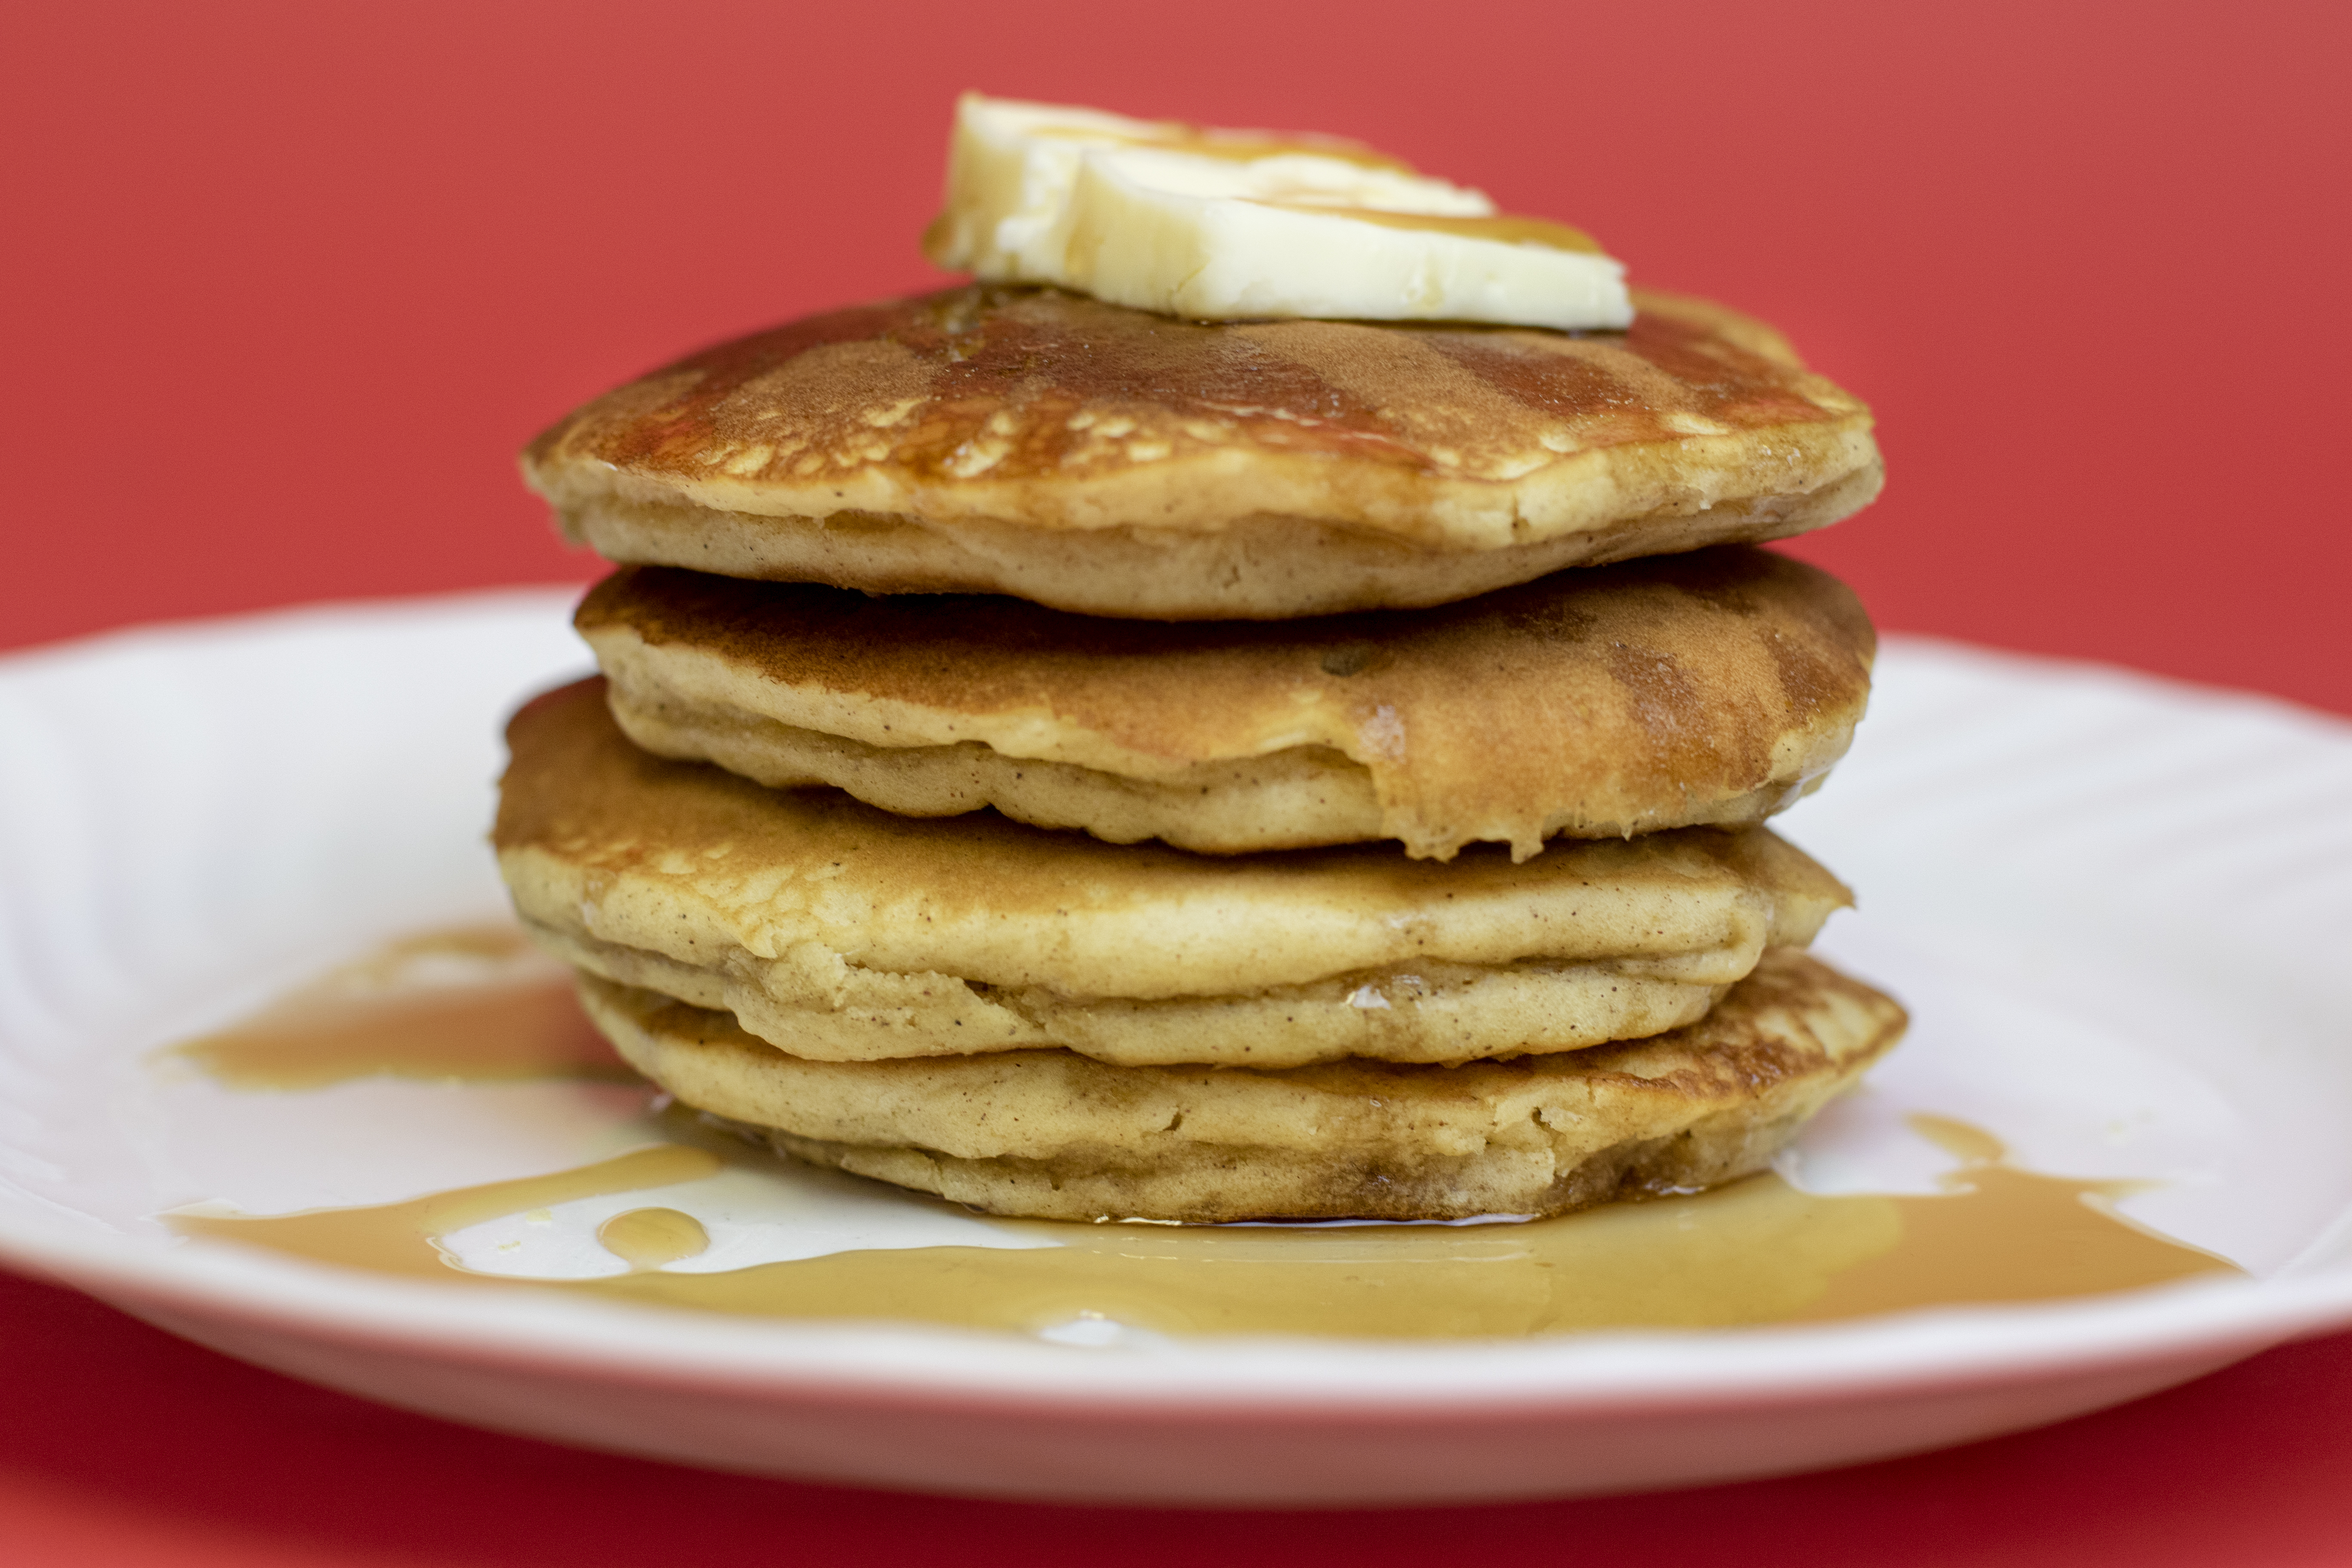 Apple cinnamon pancakes with butter and syrup drizzling over the sides on a white plate with a red backdrop